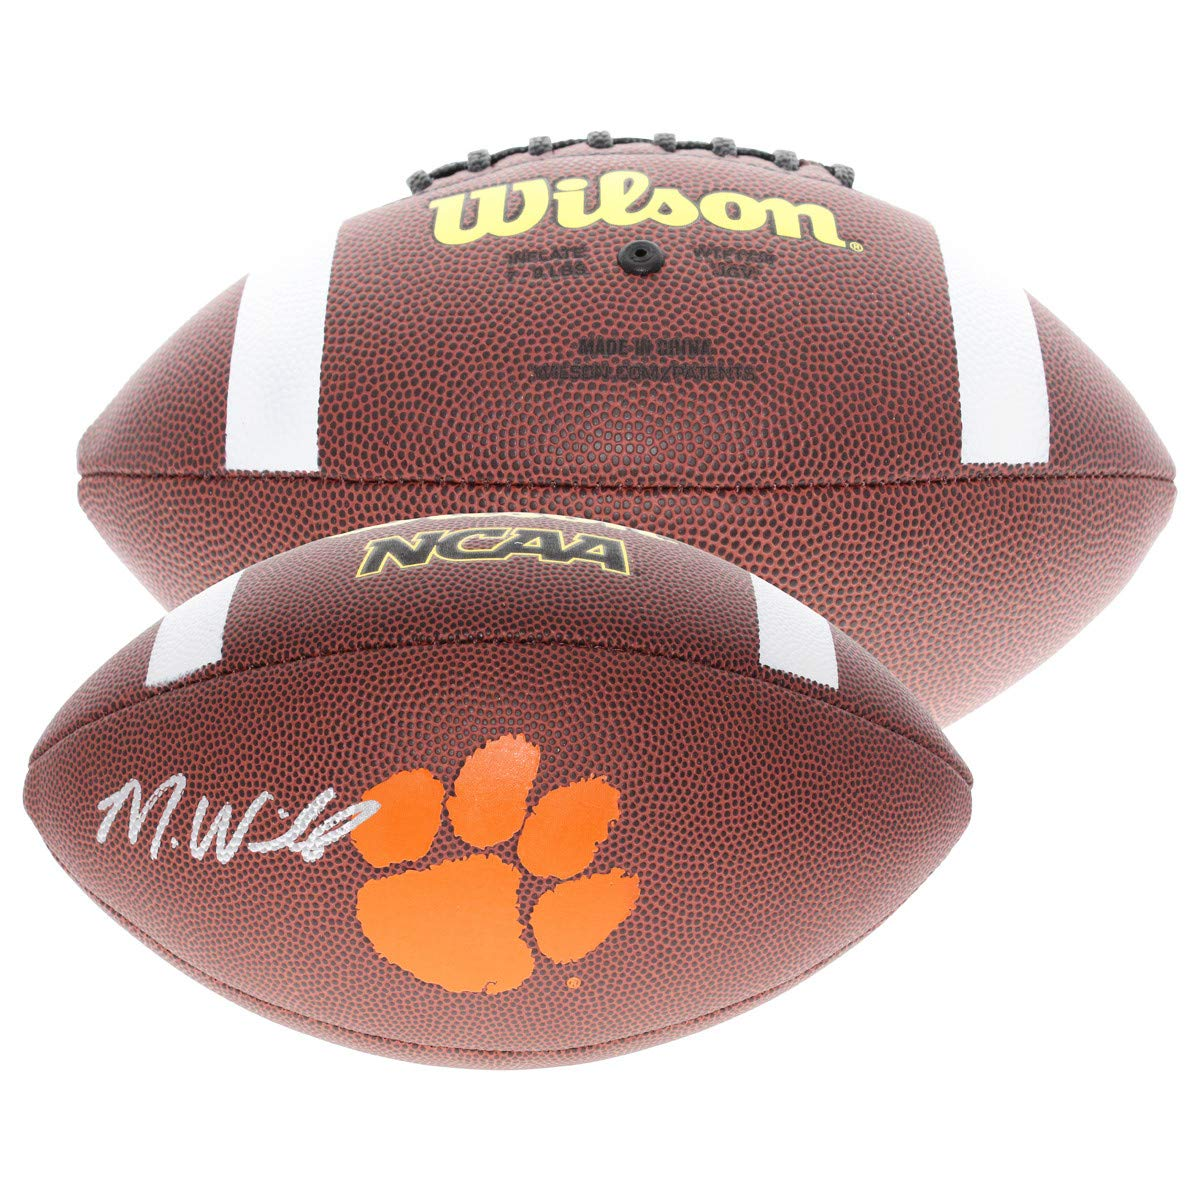 Mike Williams Autographed Signed Clemson Tigers Wilson Logo Football - Beckett Authentic